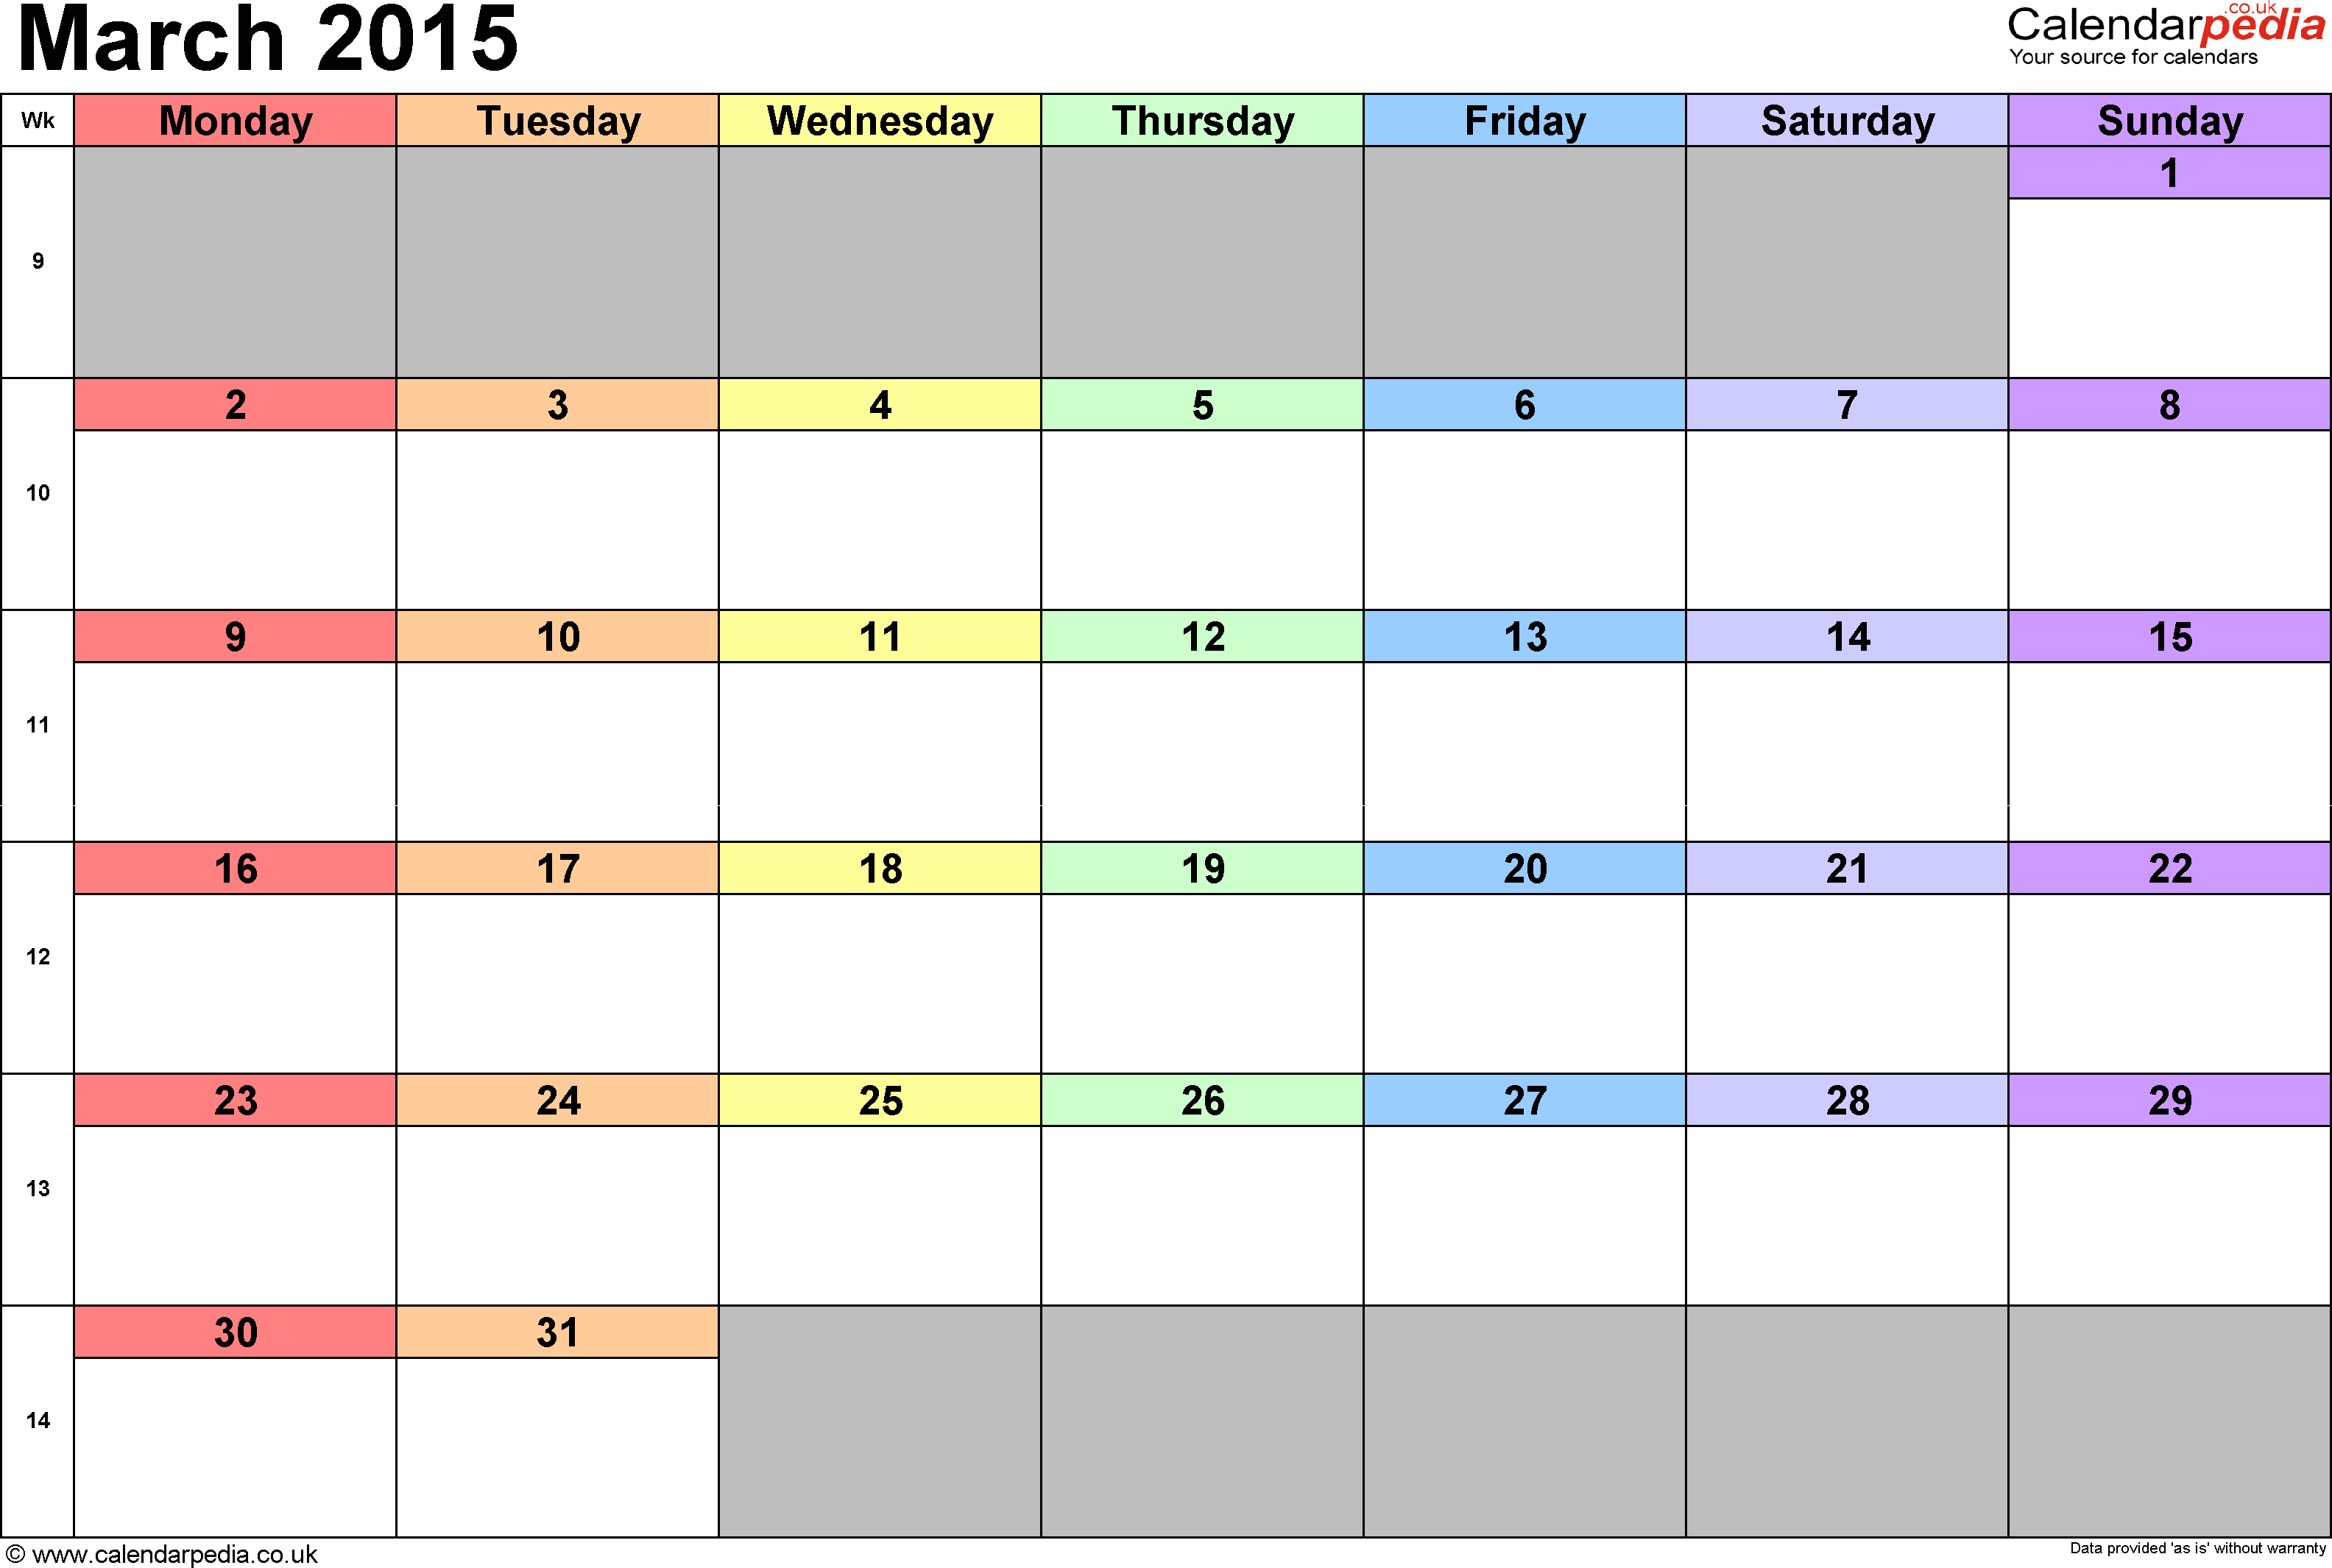 Calendar March 2015, landscape orientation, 1 page, with UK bank holidays and week numbers